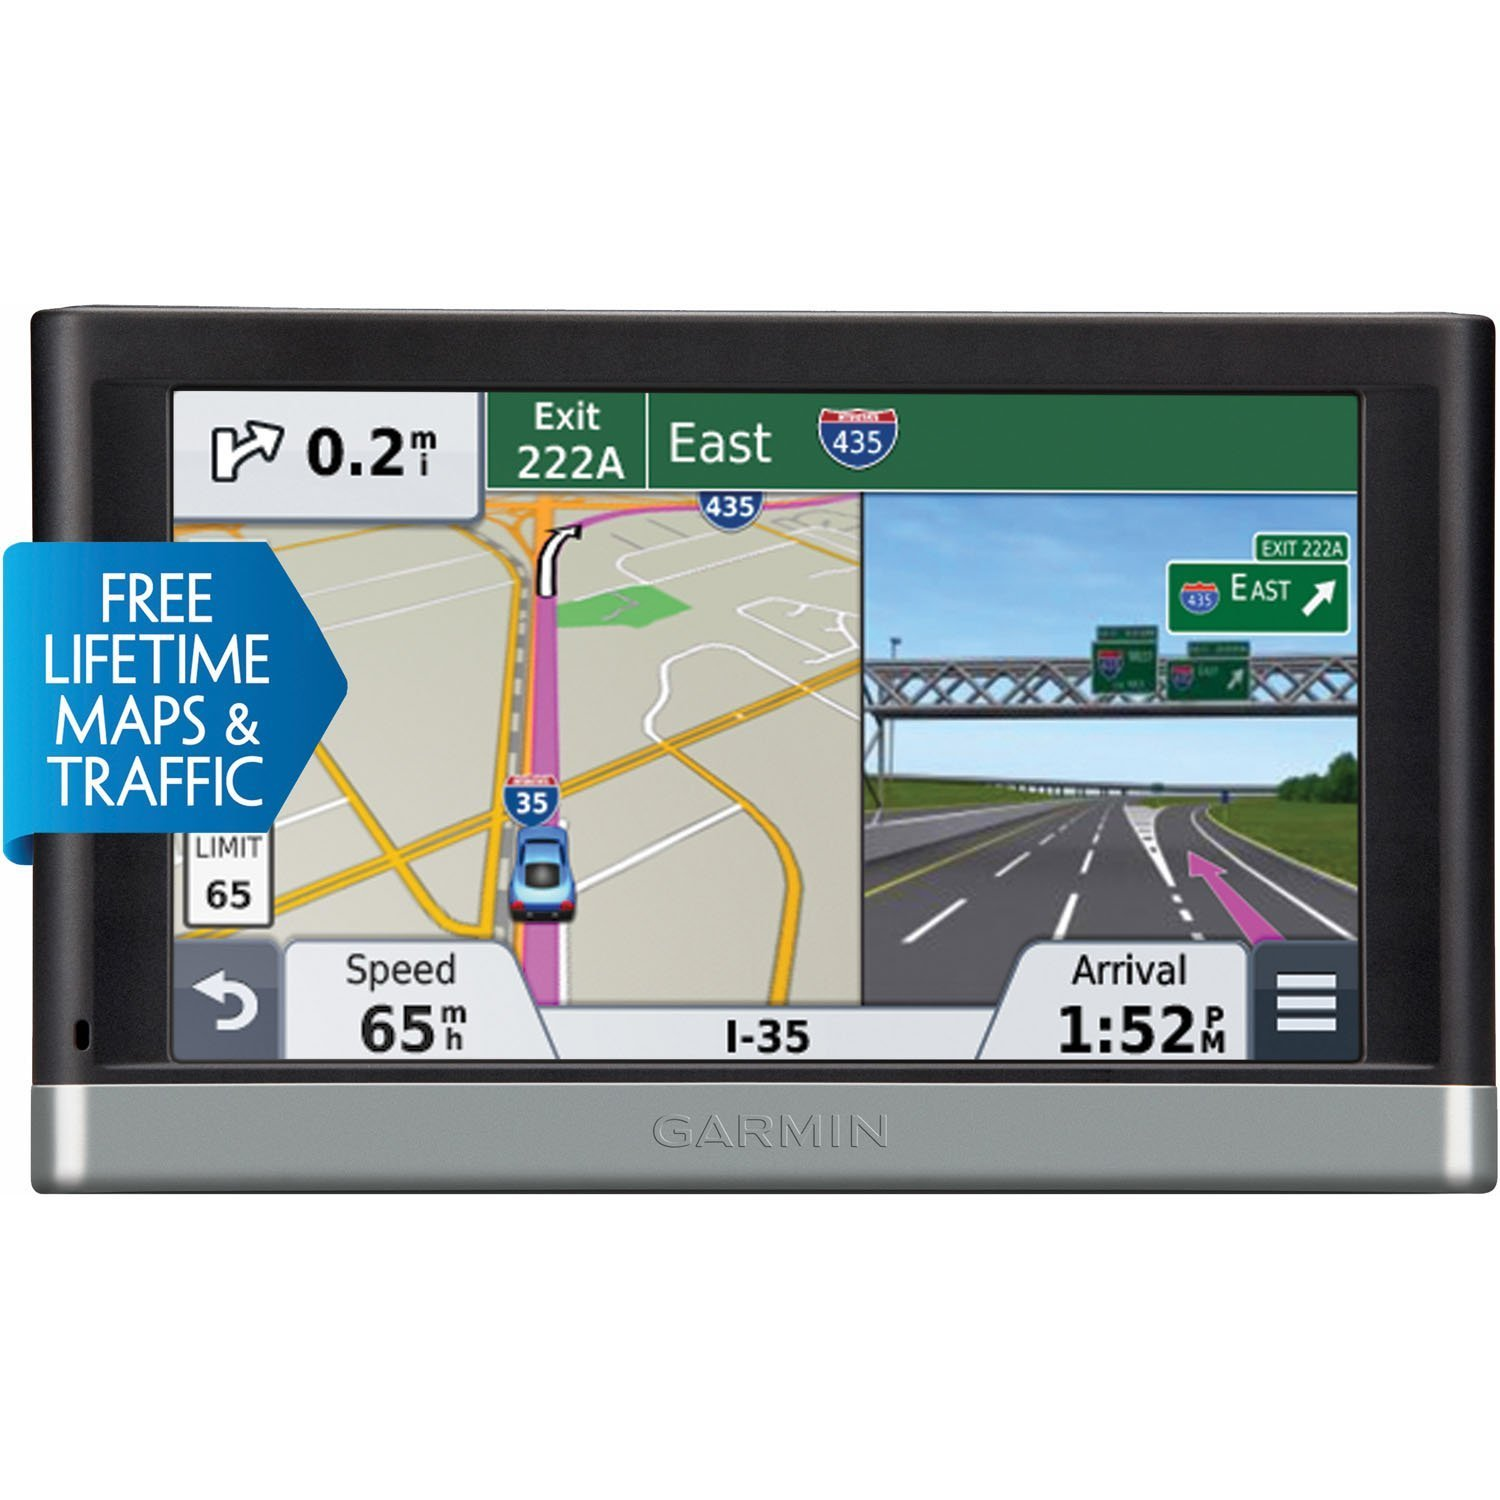 3 Best GPS For Car